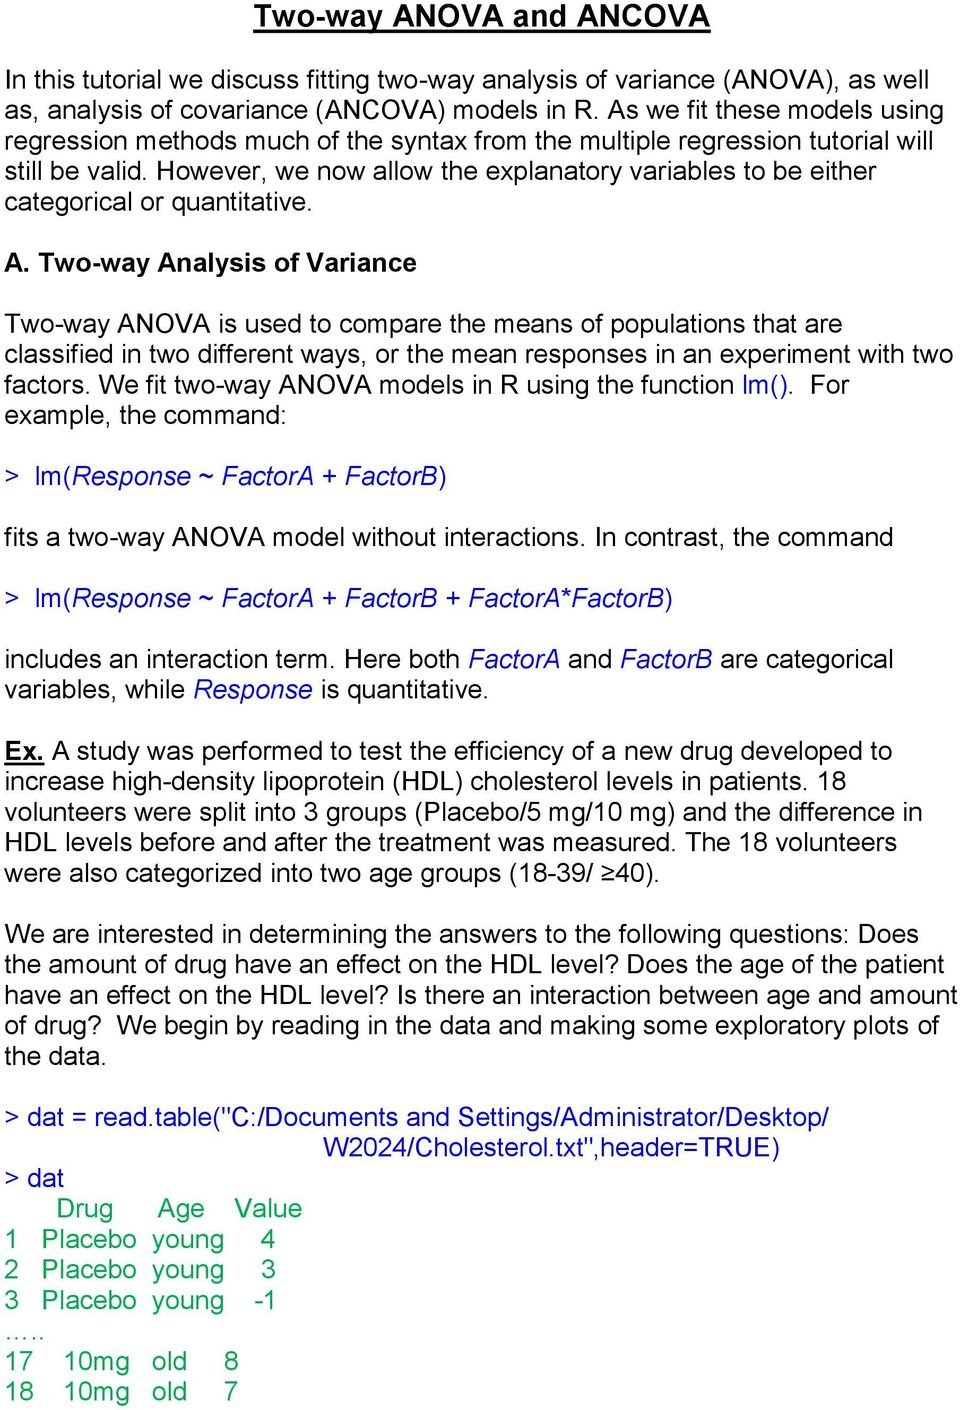 Two-way ANOVA and ANCOVA - PDF